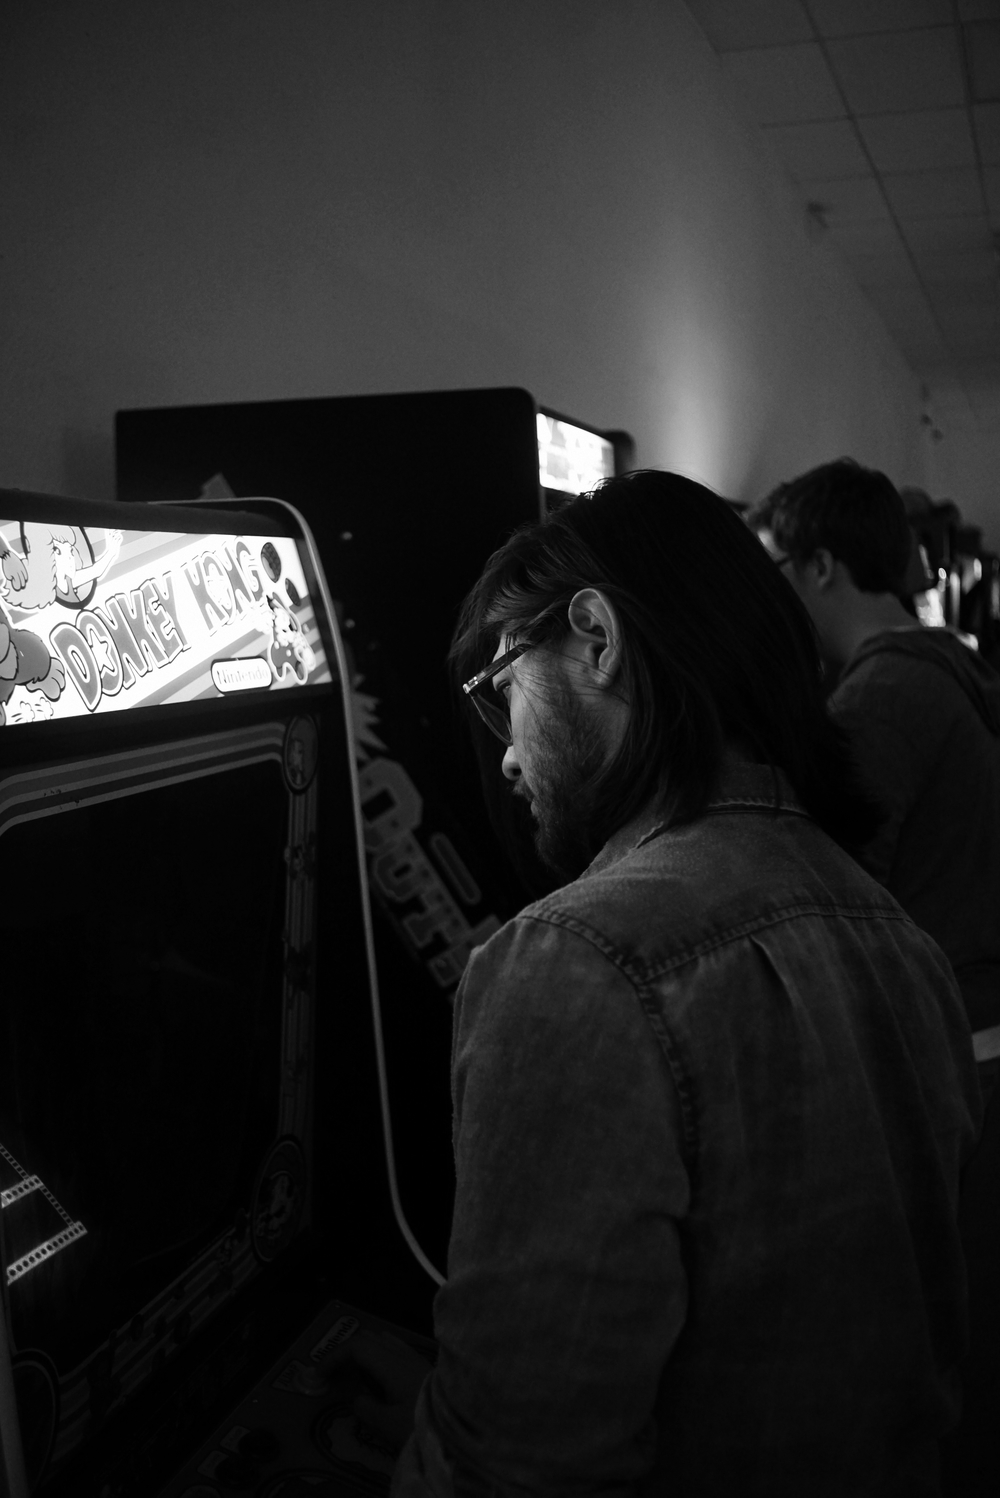 It's not just Pinball, vintage arcade games from the 80s and 90s are also on display for play. Photo: Trey Takahashi